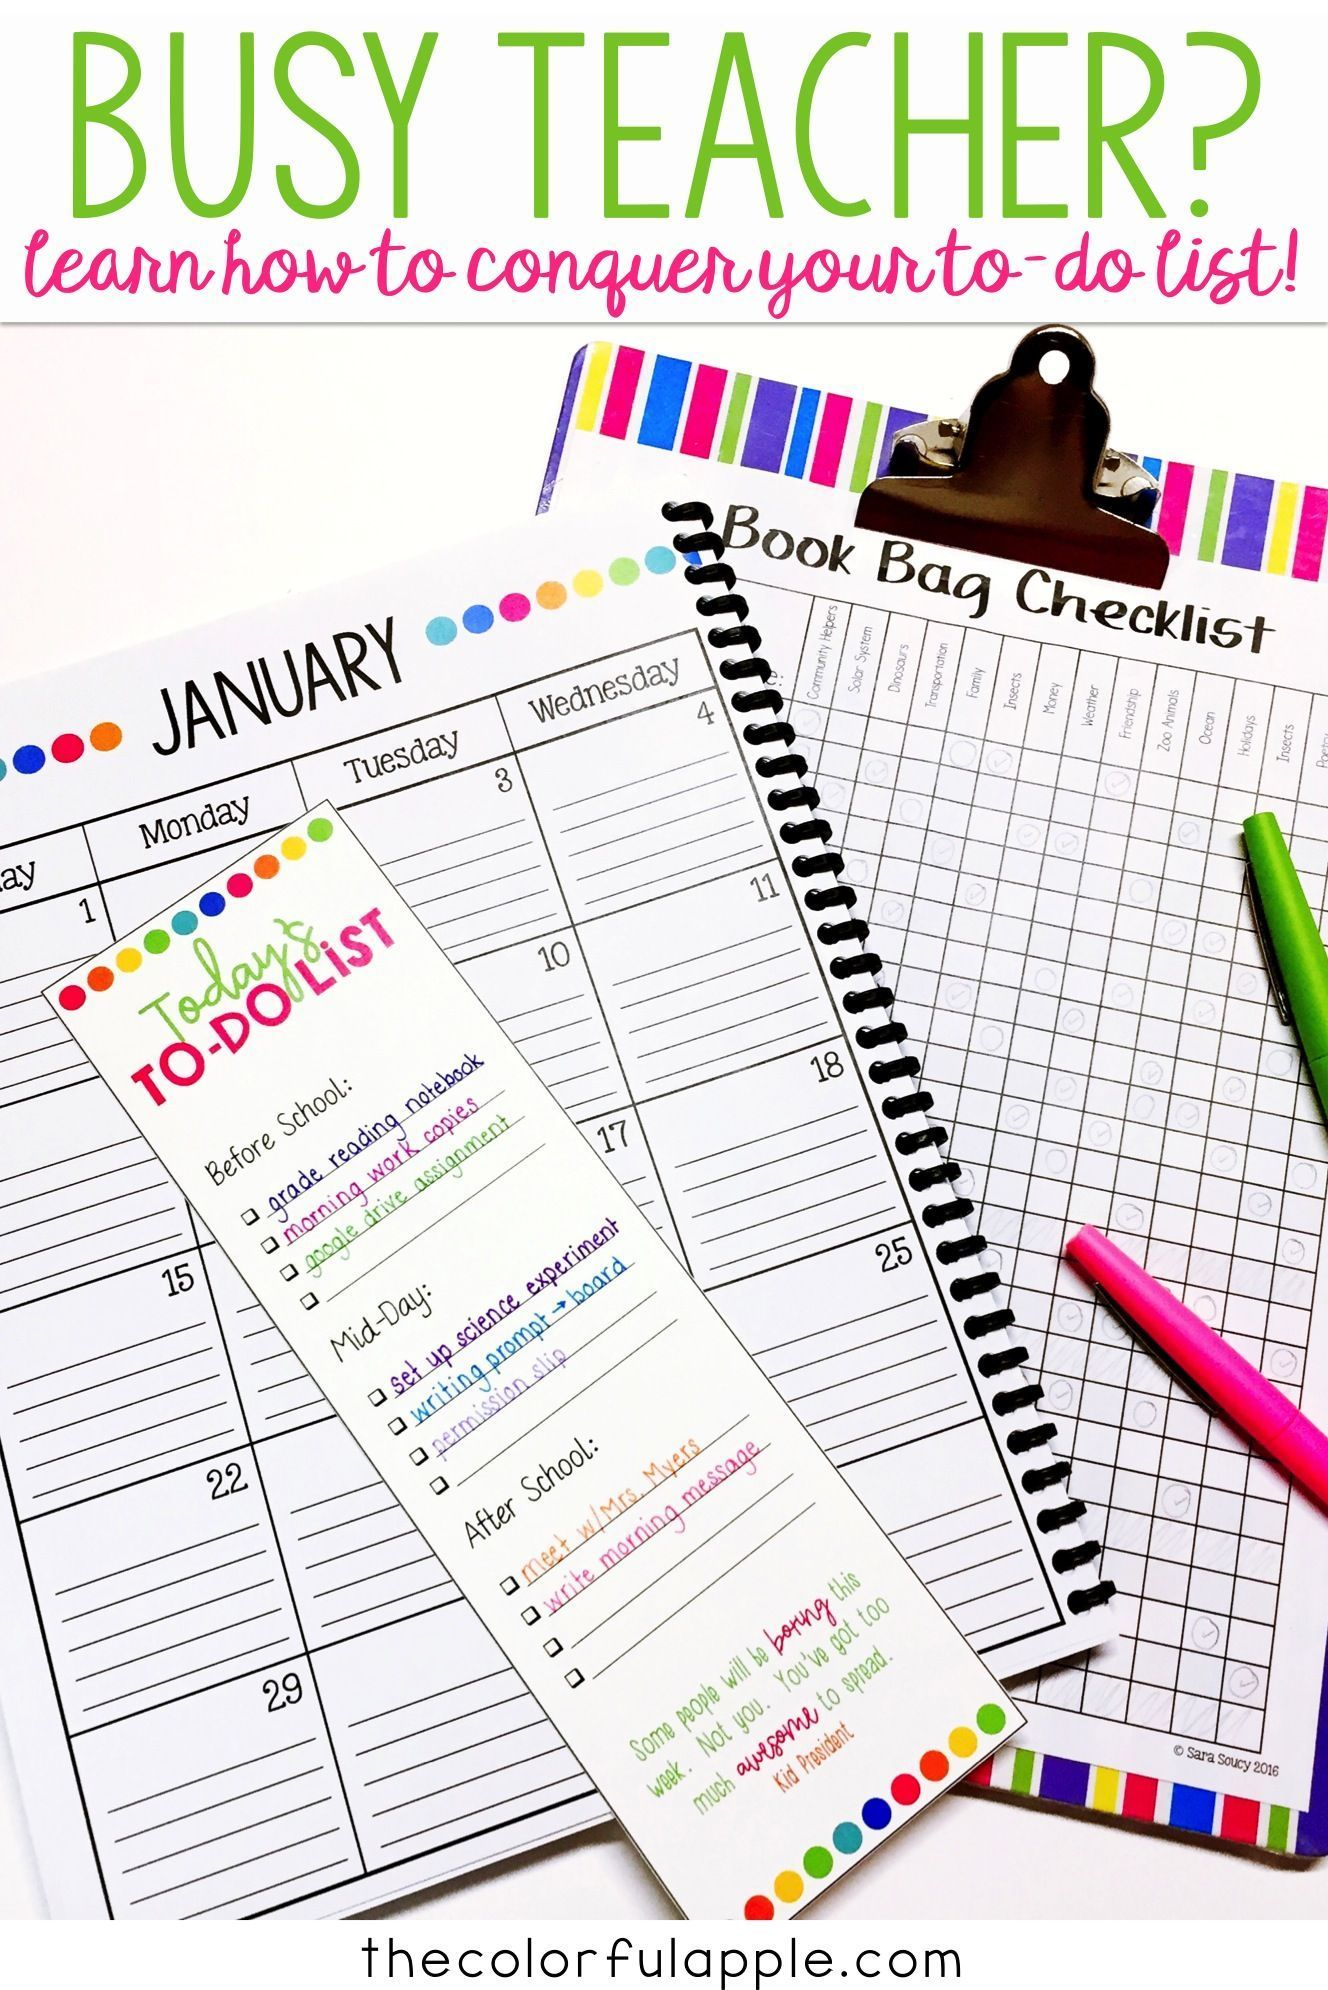 These teacher to-do list printables {for free!} will help you get everything accomplished.  The template is easy to use and free to print. #teacherplannerfree These teacher to-do list printables {for free!} will help you get everything accomplished.  The template is easy to use and free to print. #teacherplannerfree These teacher to-do list printables {for free!} will help you get everything accomplished.  The template is easy to use and free to print. #teacherplannerfree These teacher to-do lis #teacherplannerfree